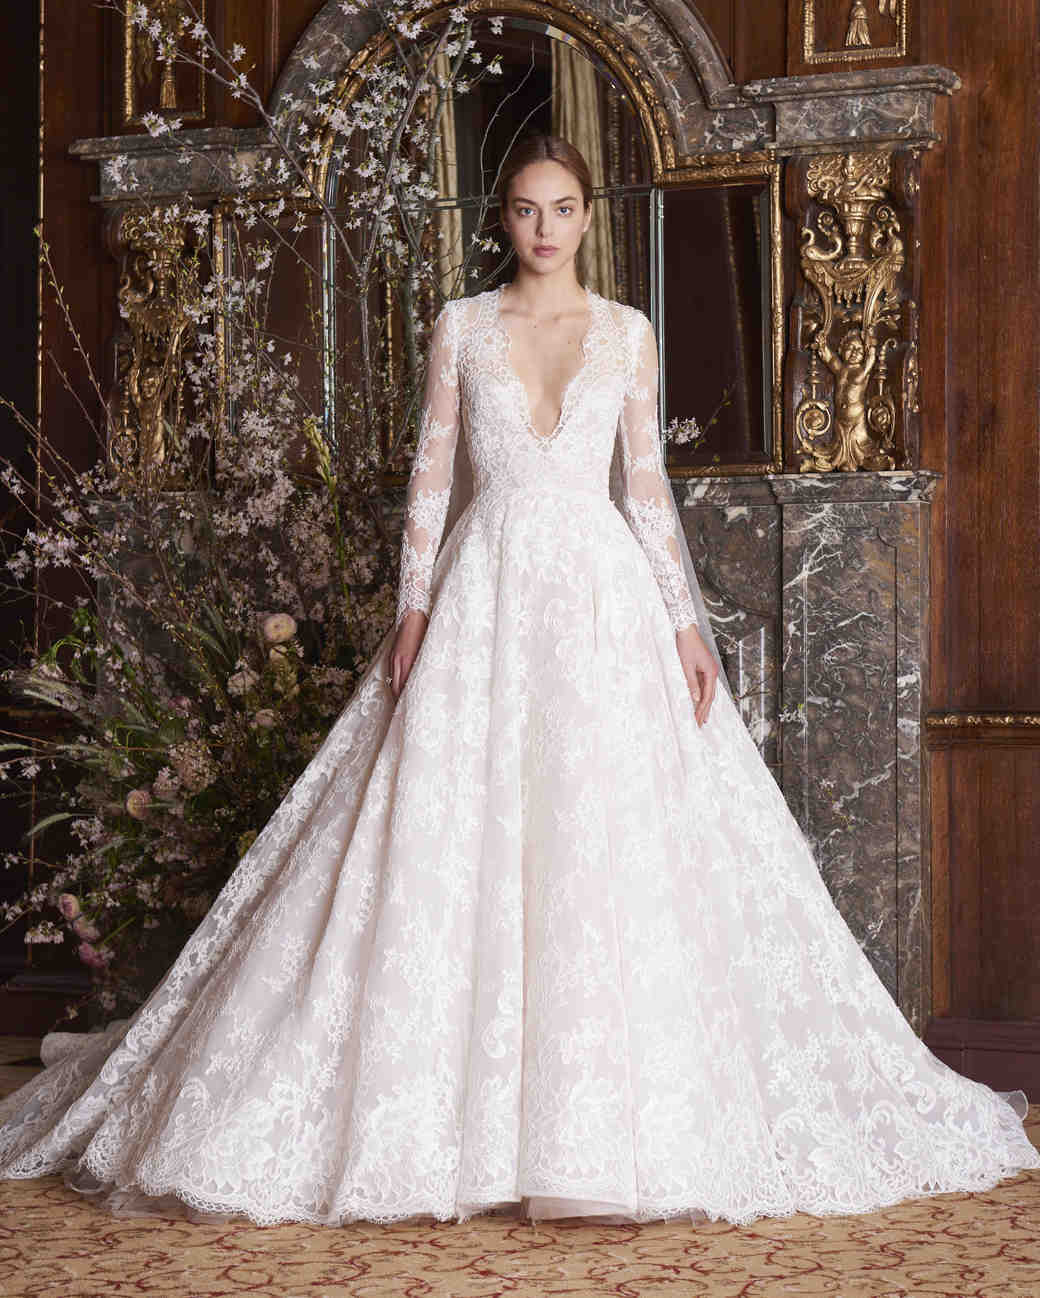 2019 Wedding Dresses With Sleeves: Long-Sleeved Wedding Dresses We Love